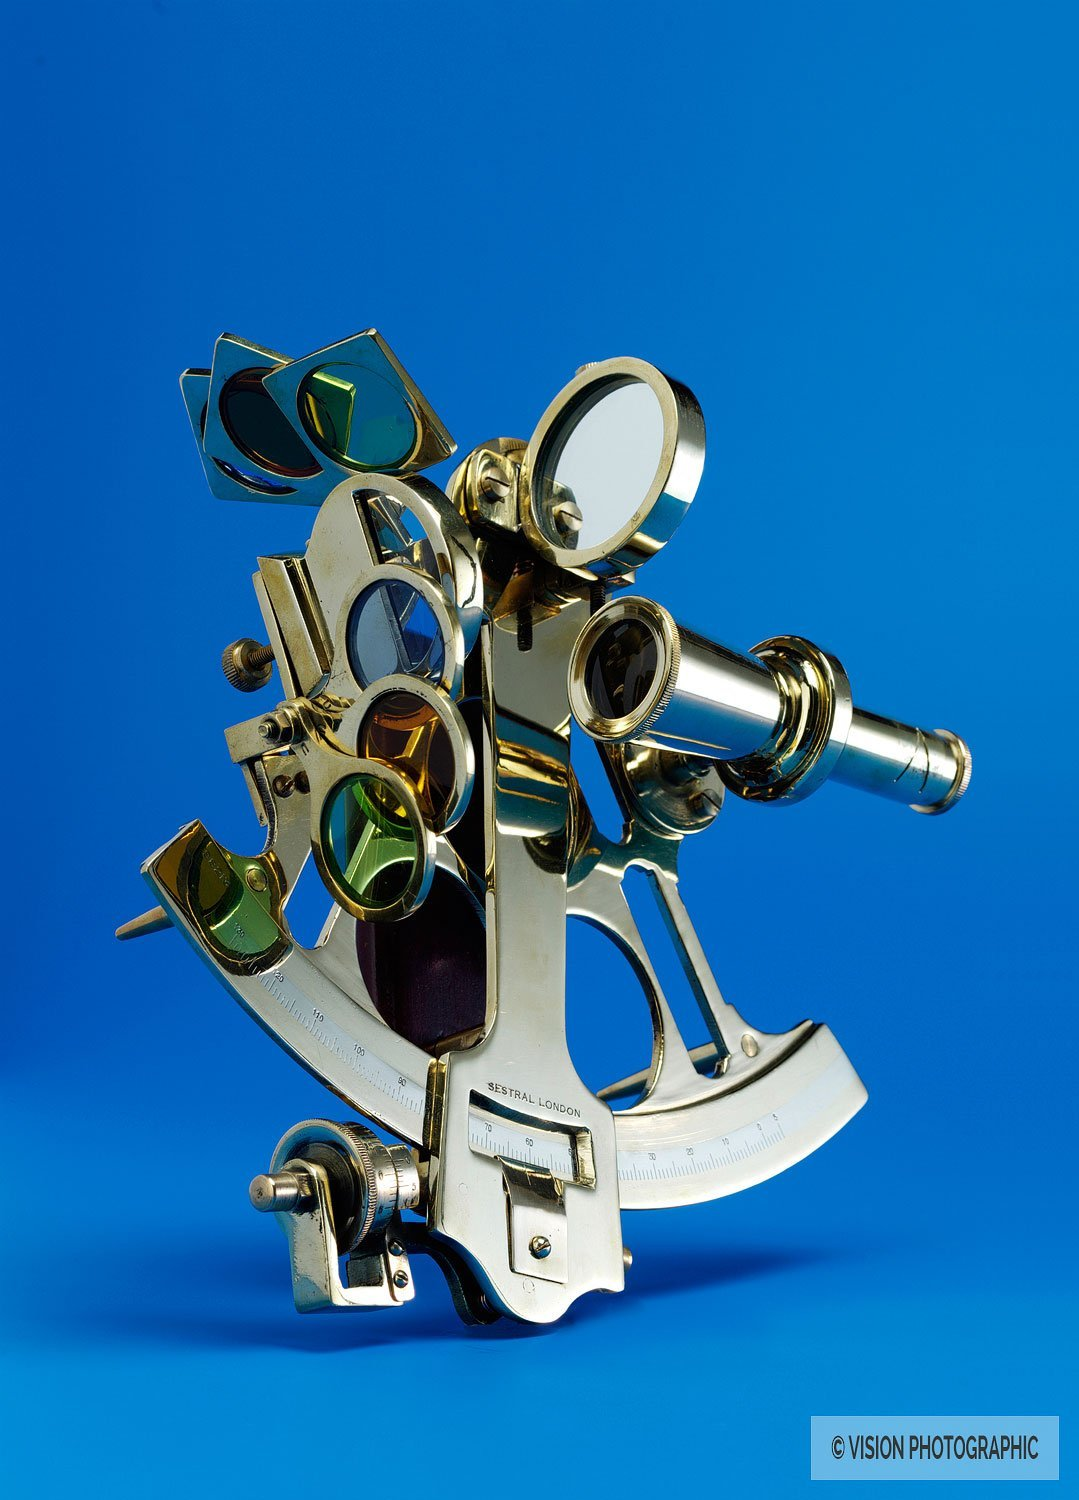 still life image of a golden sextant